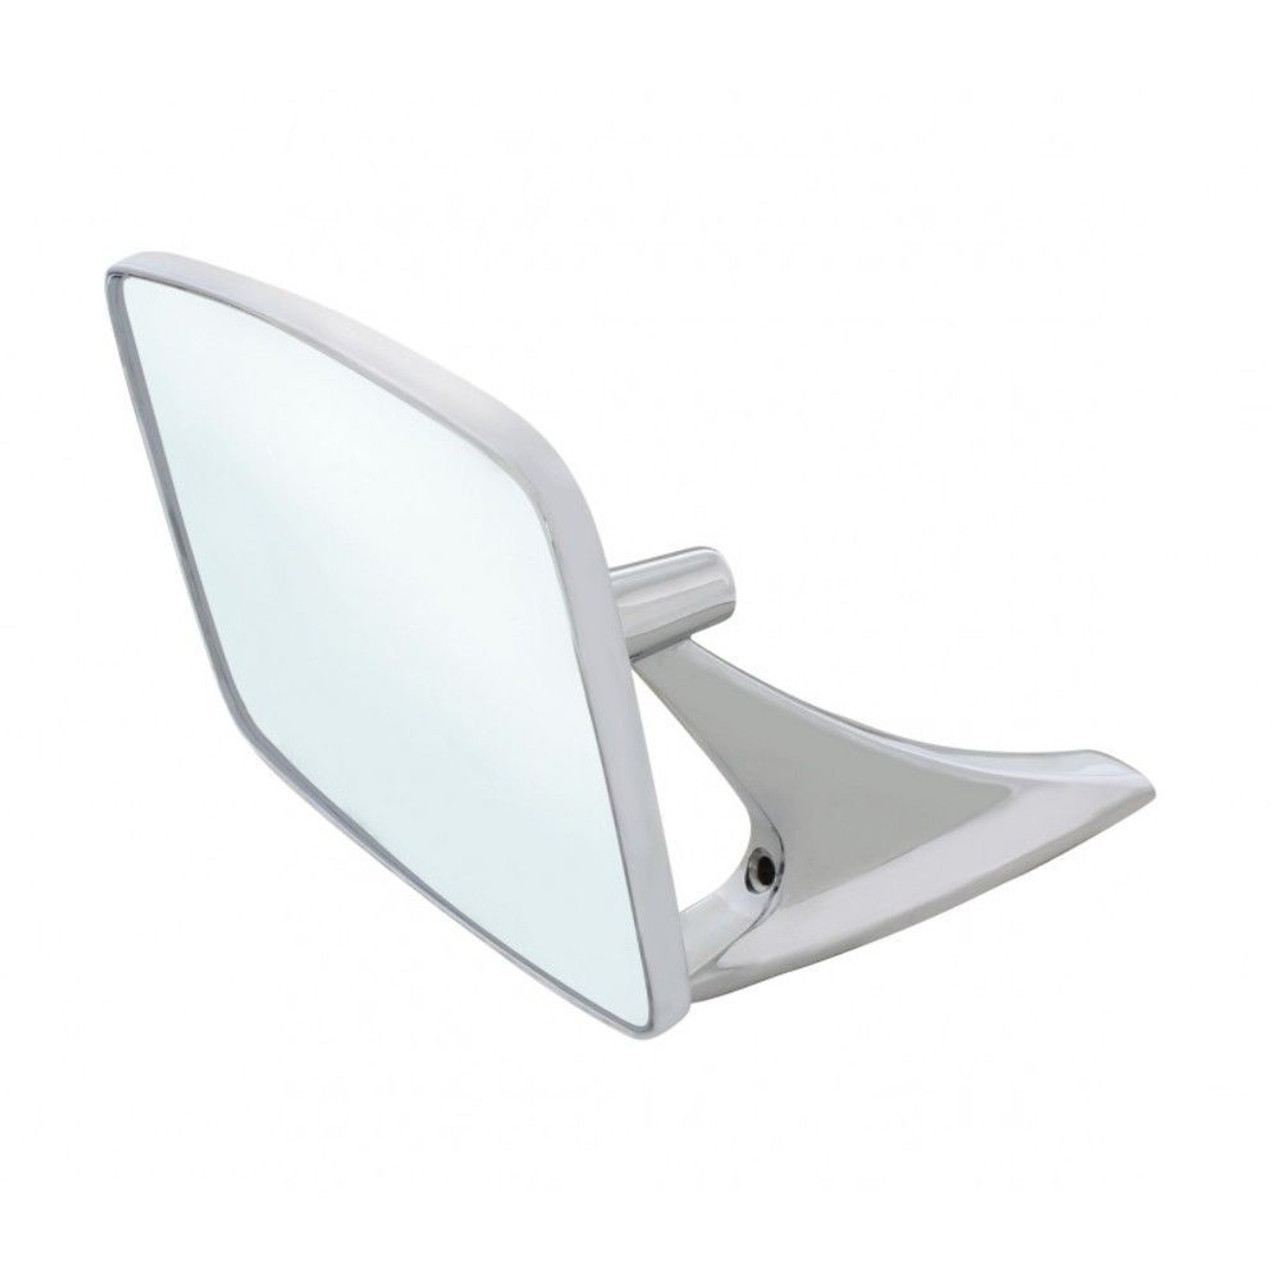 1973 - 1980 Chevy GMC Truck Exterior Chrome Mirror Assembly LH or RH w/ Hardware